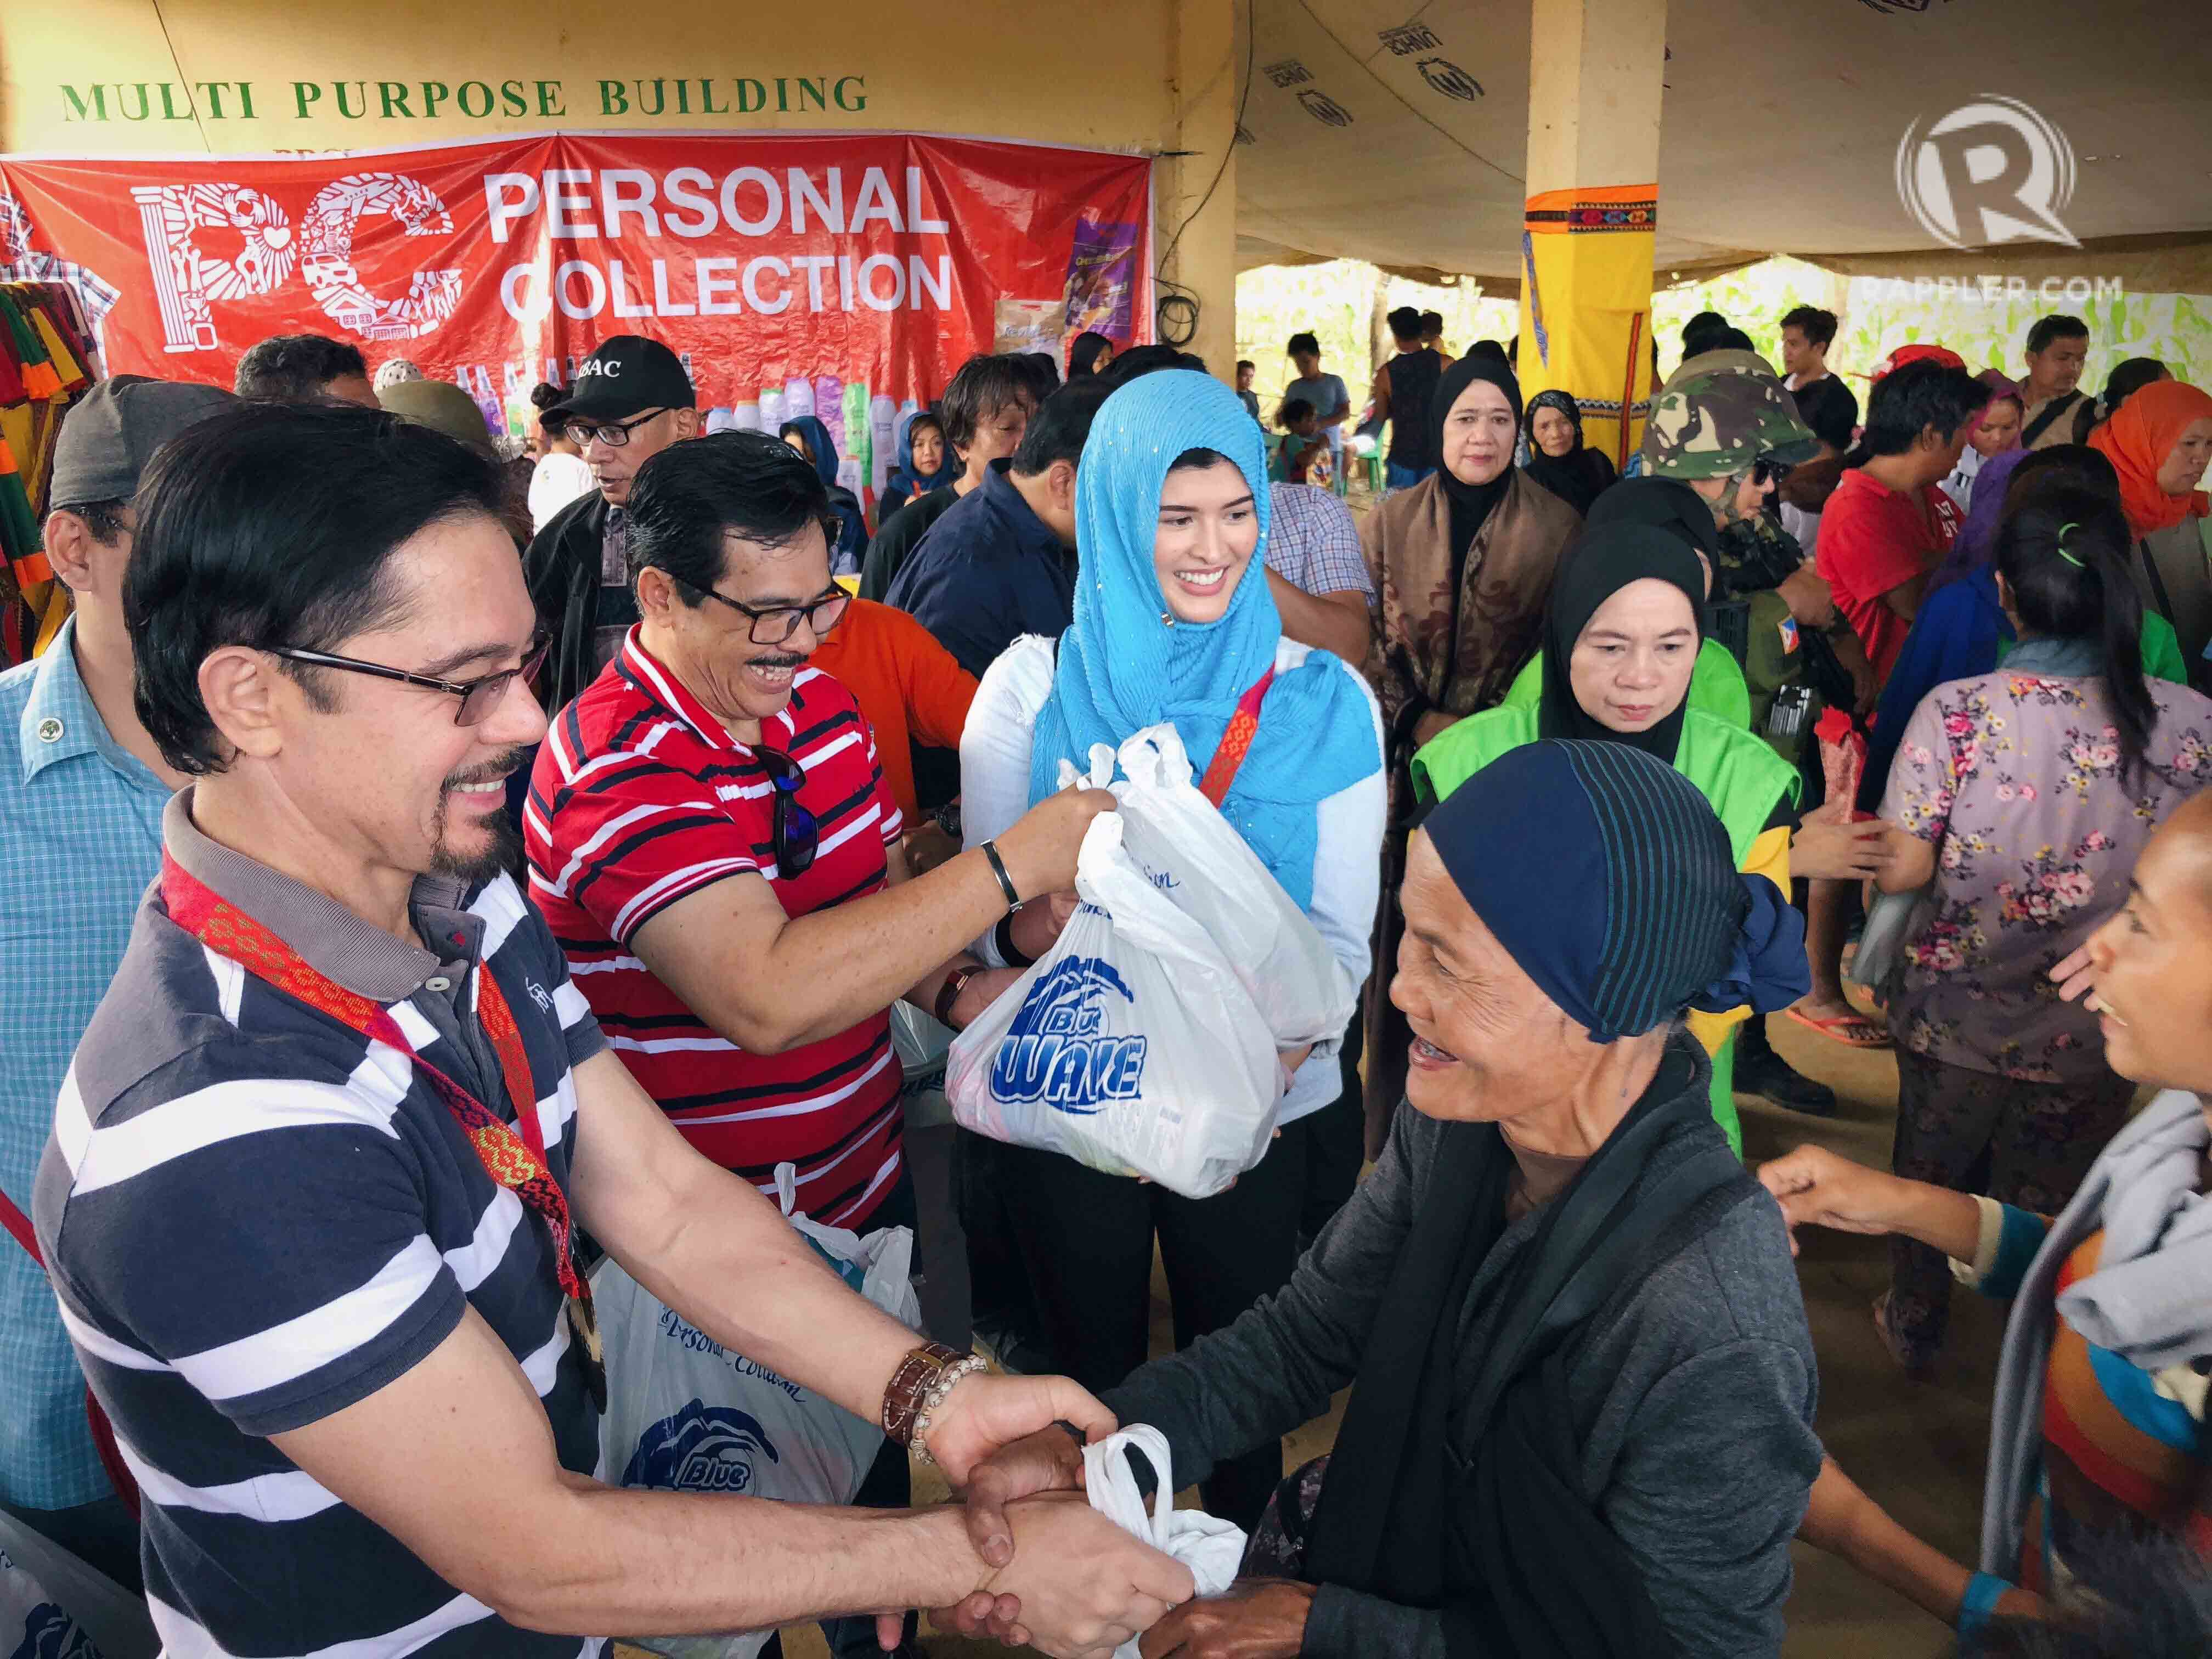 HAPPY TO HELP. Christopher de Leon and Mariel de Leon happily give basic supplies to those in need in Marawi. All photos courtesy of Mariel de Leon